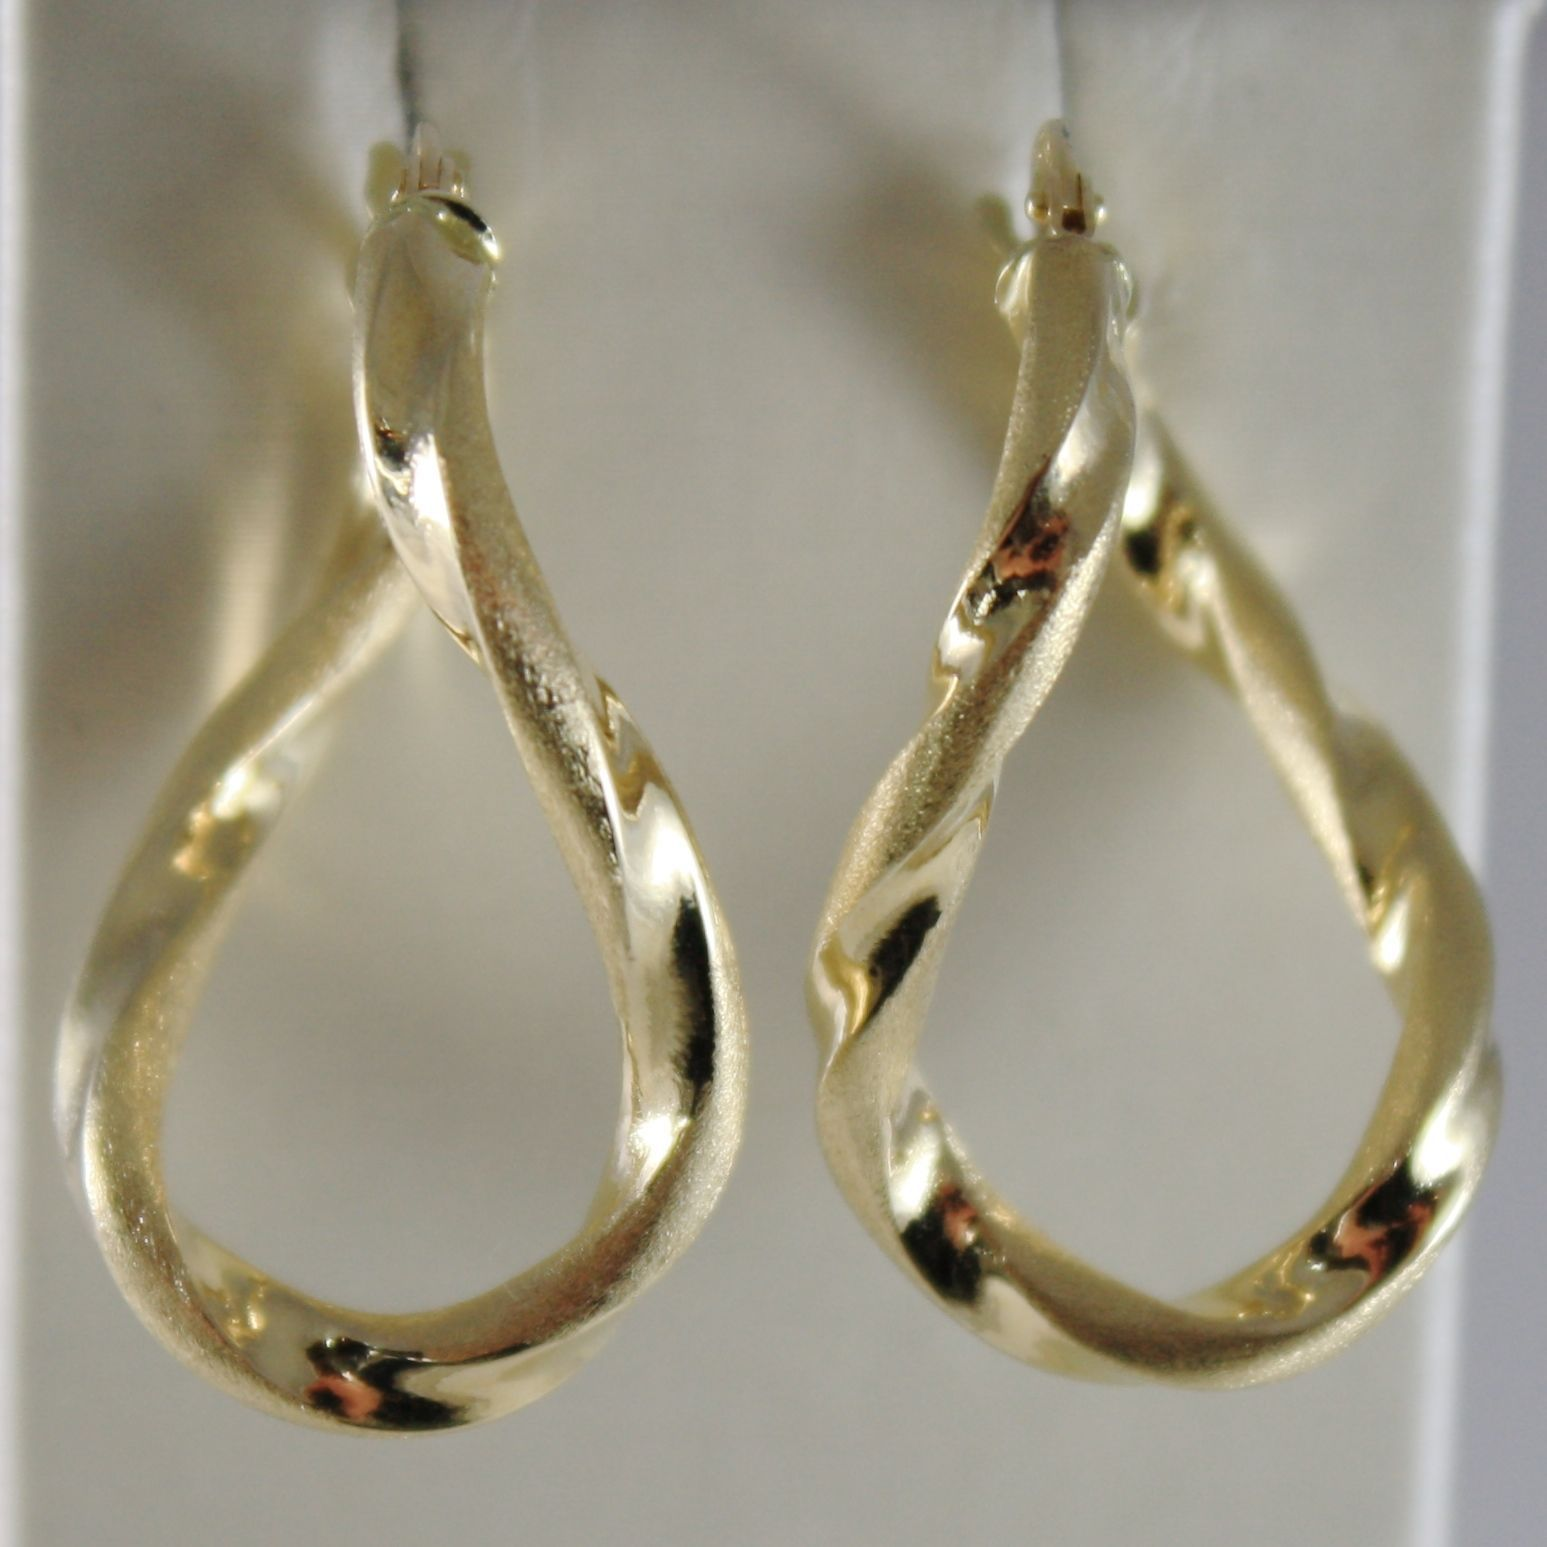 18K YELLOW GOLD TWISTED EARRINGS SATIN & BRIGHT OVAL DROP 28 MM MADE IN ITALY